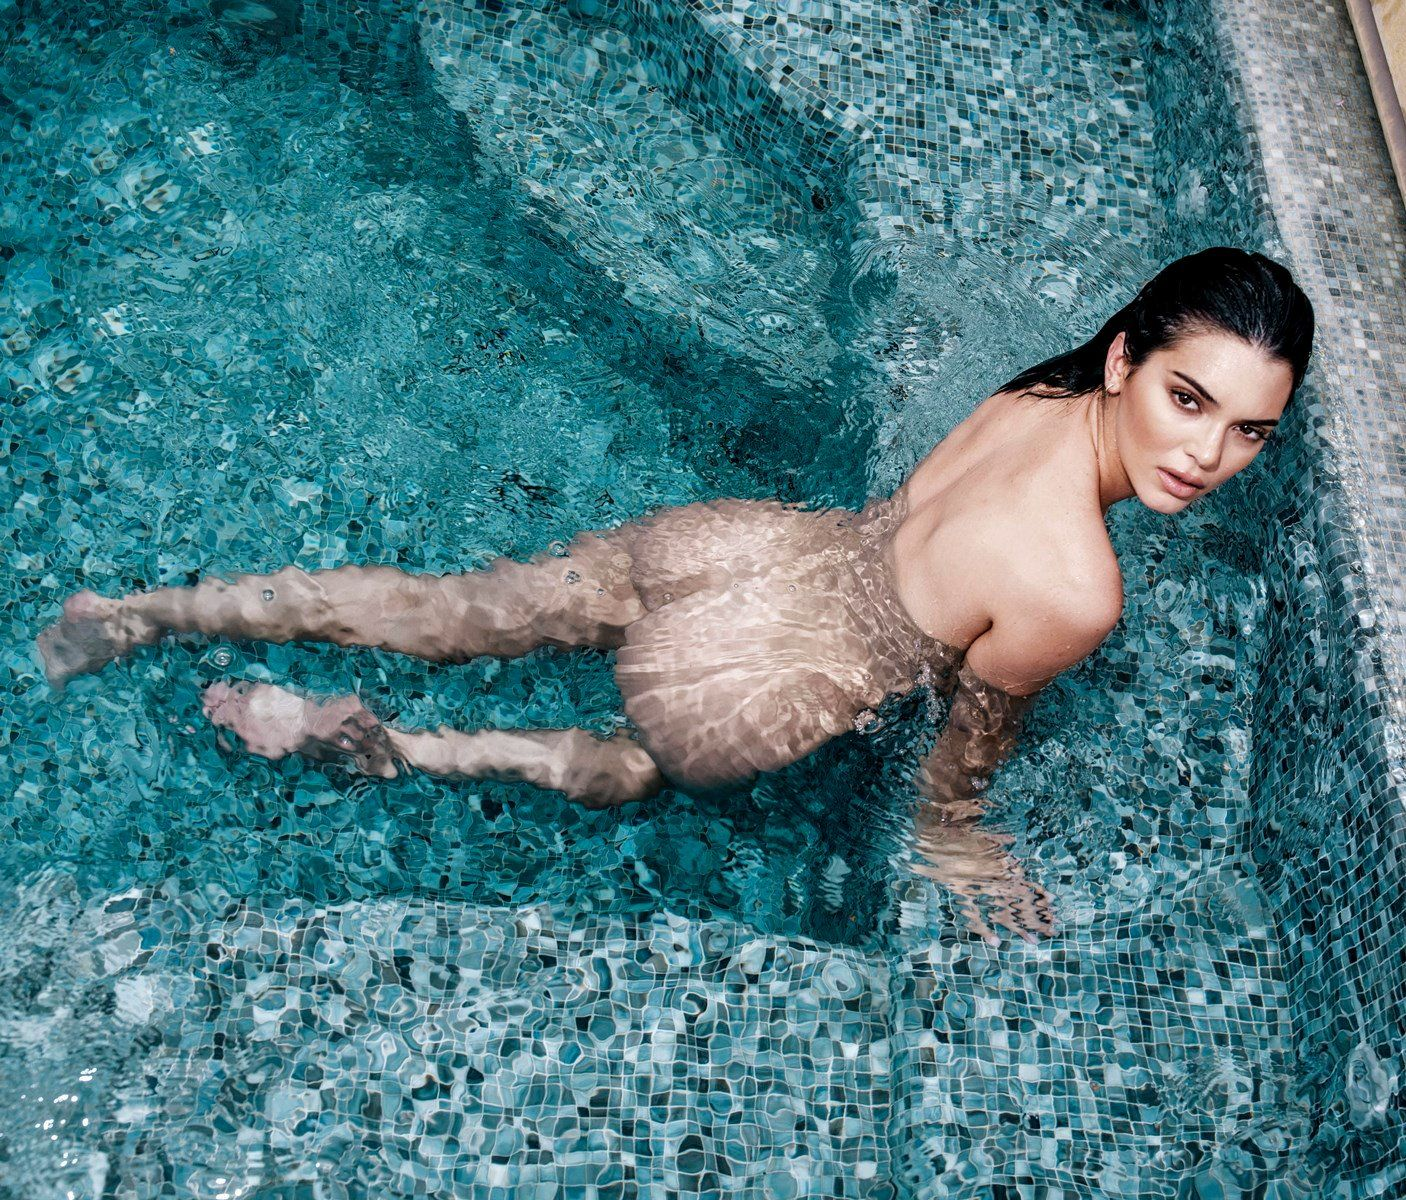 Fumble reccomend kylie jenner ass compilation